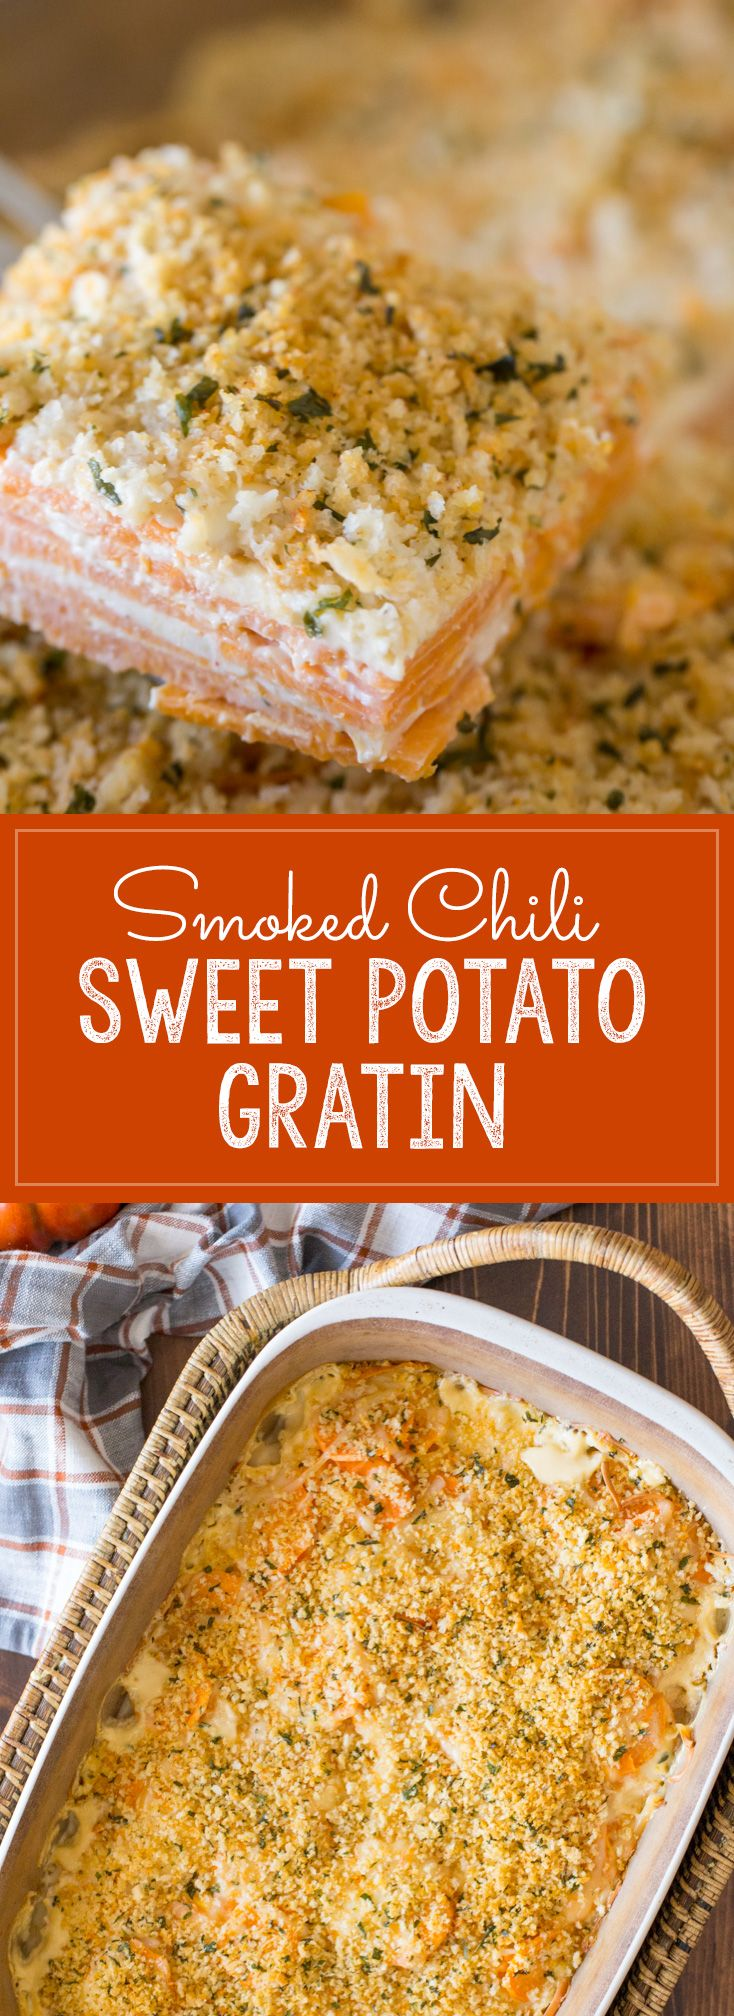 Smoked Chili Sweet Potato Gratin   Lovely Little Kitchen   A Spicy Twist On  The Traditional Sweet Potato Dish That Is Perfect For Your Thanksgiving  Table!